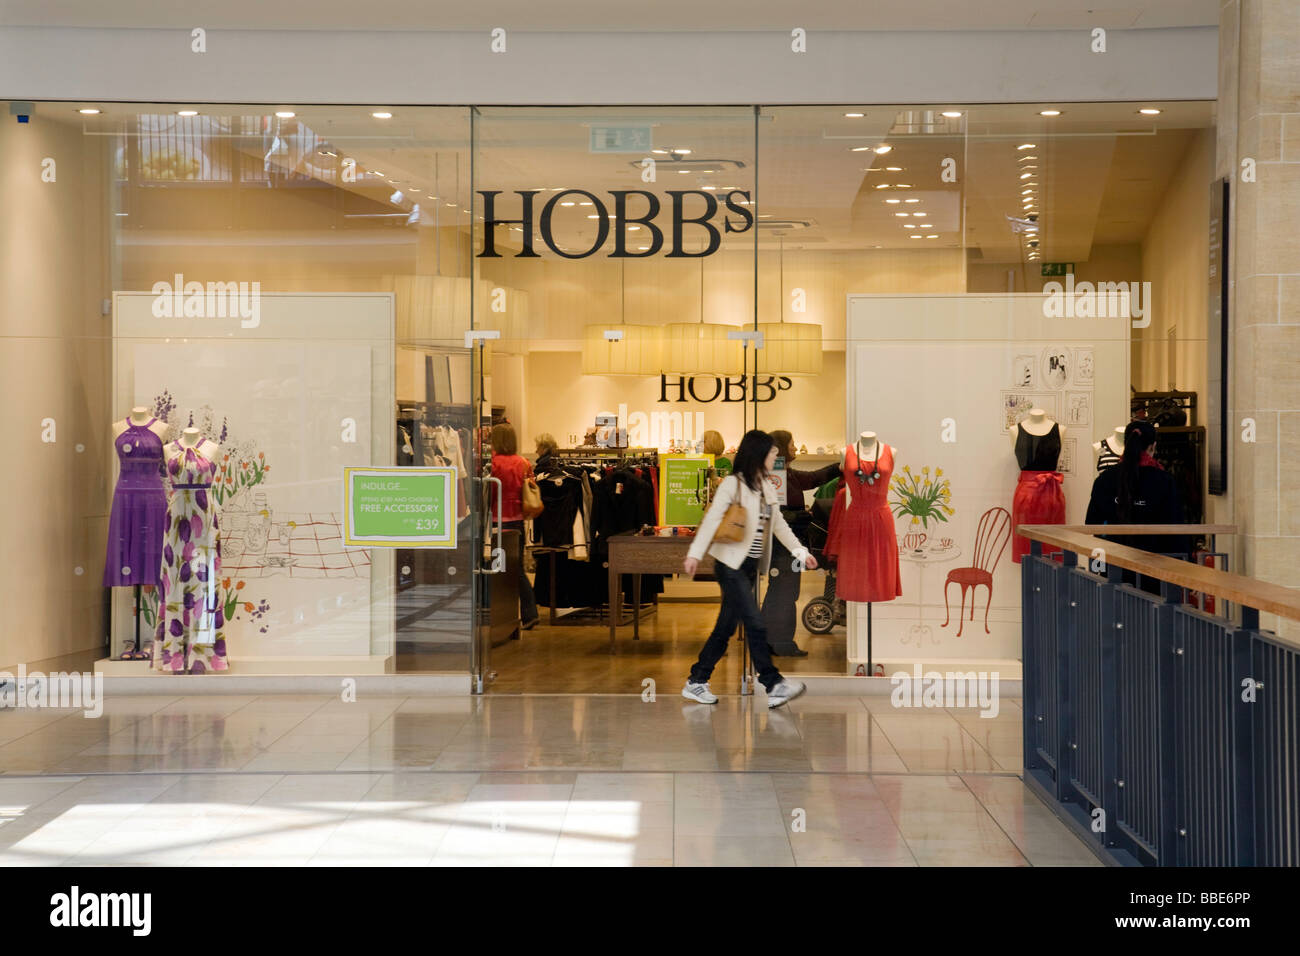 The Hobbs clothing store in the Grand Arcade, Cambridge, UK - Stock Image